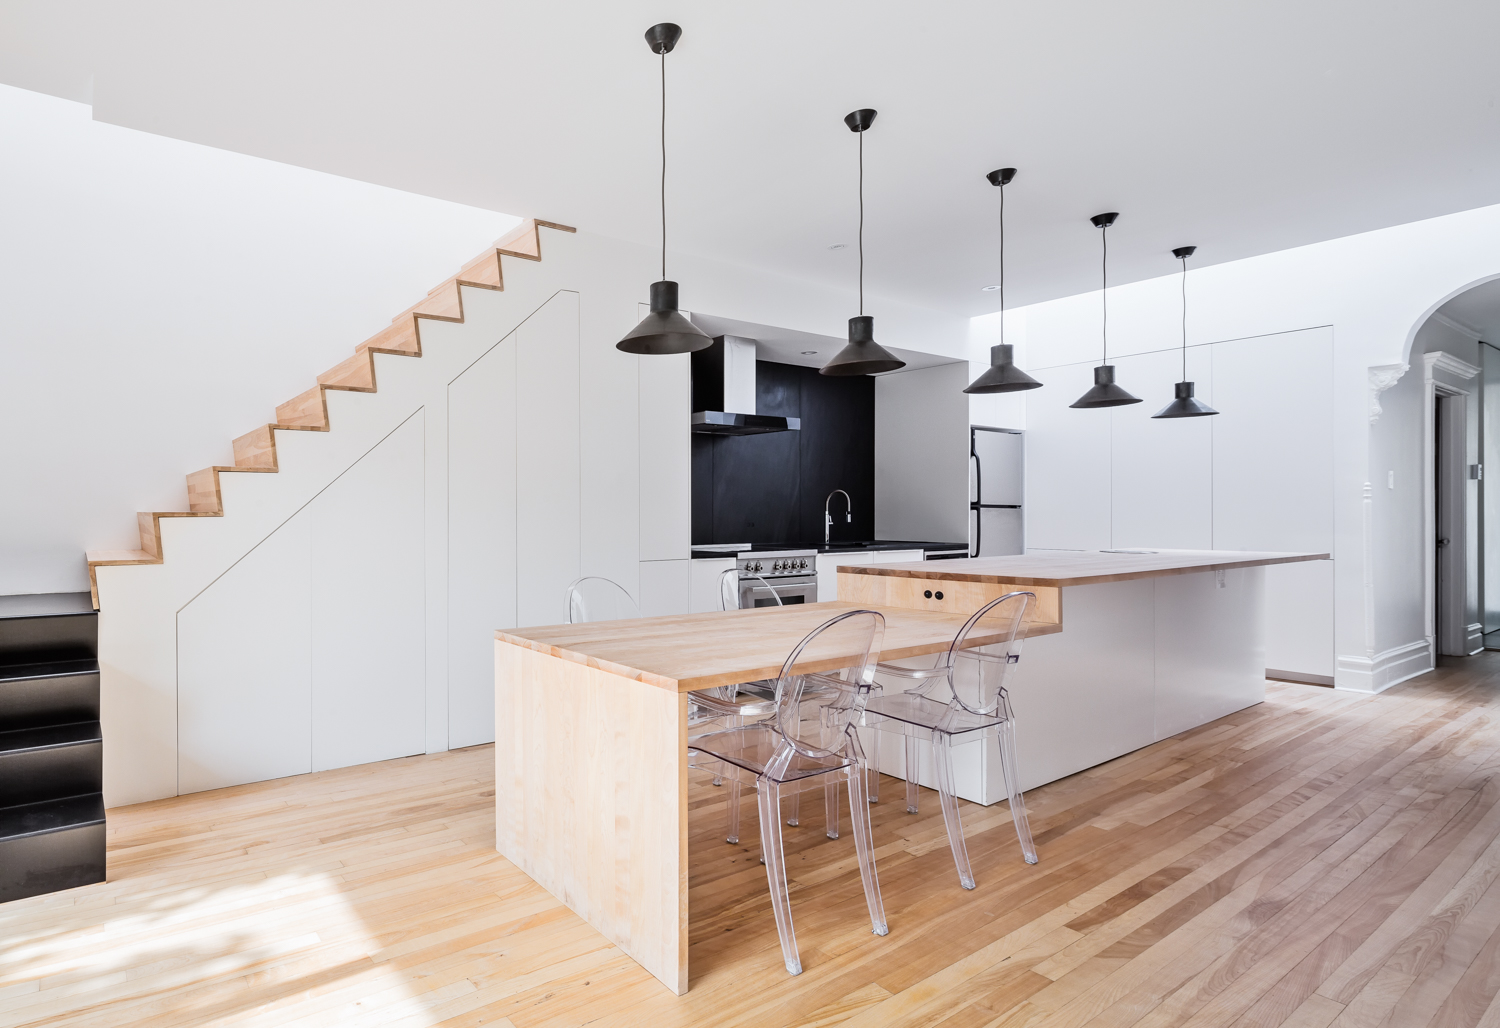 Renovation of the kitchen. Table and island in continuity. Backrest and counter in black slate from Quebec. Storage under the stairs. New skylights, arches and existing details preserved